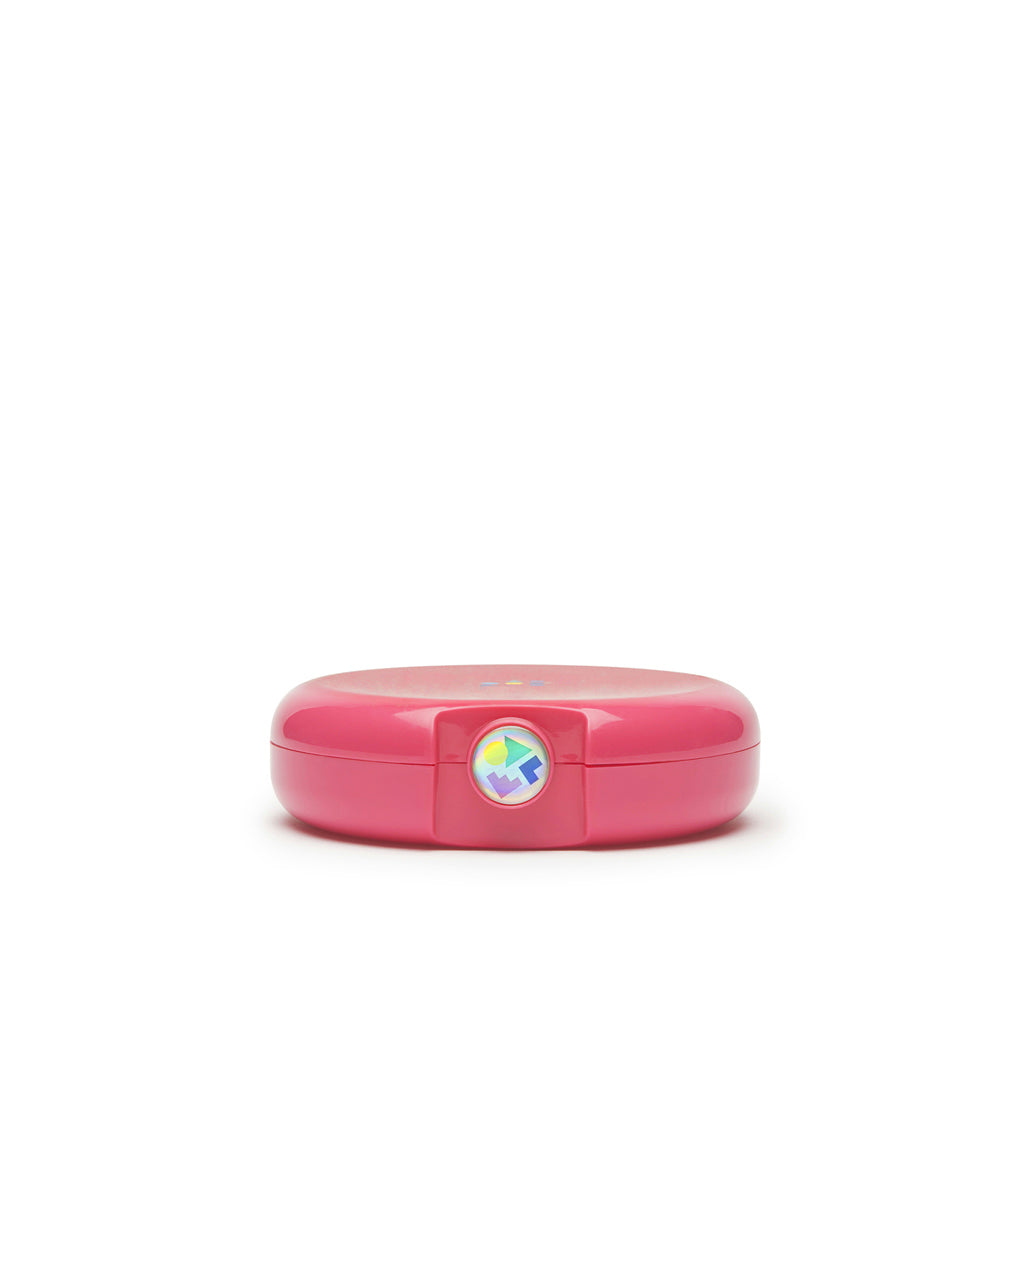 Small Round Caboodles Makeup Case - Hot Pink